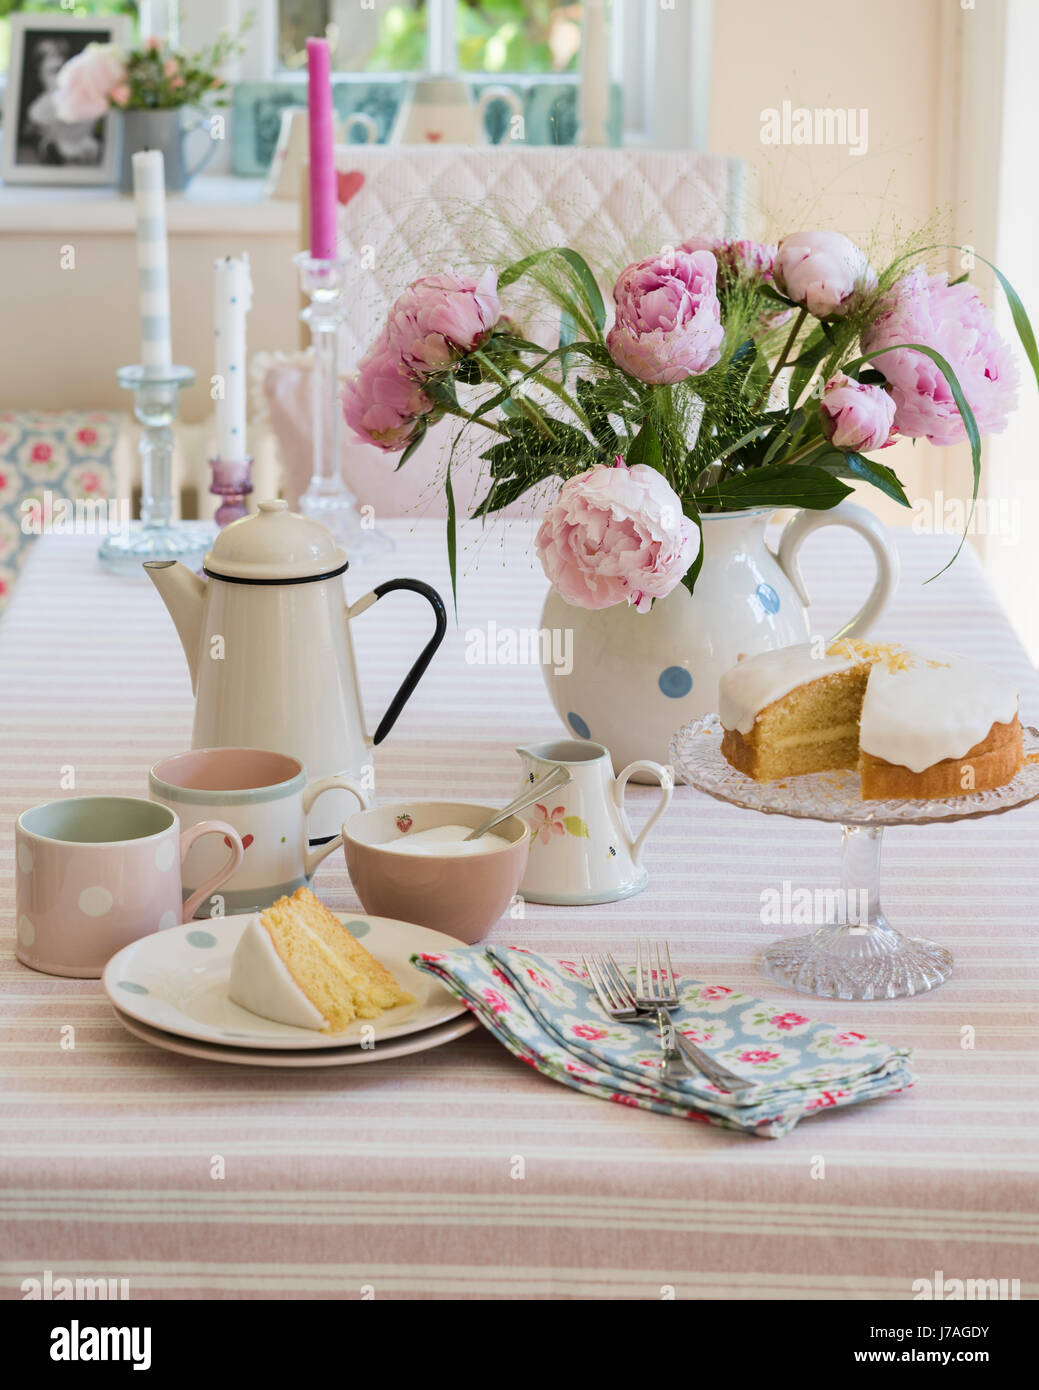 Sponge cake, enamel teapot and pink peonies on striped table cloth from Susie Watson Designs - Stock Image